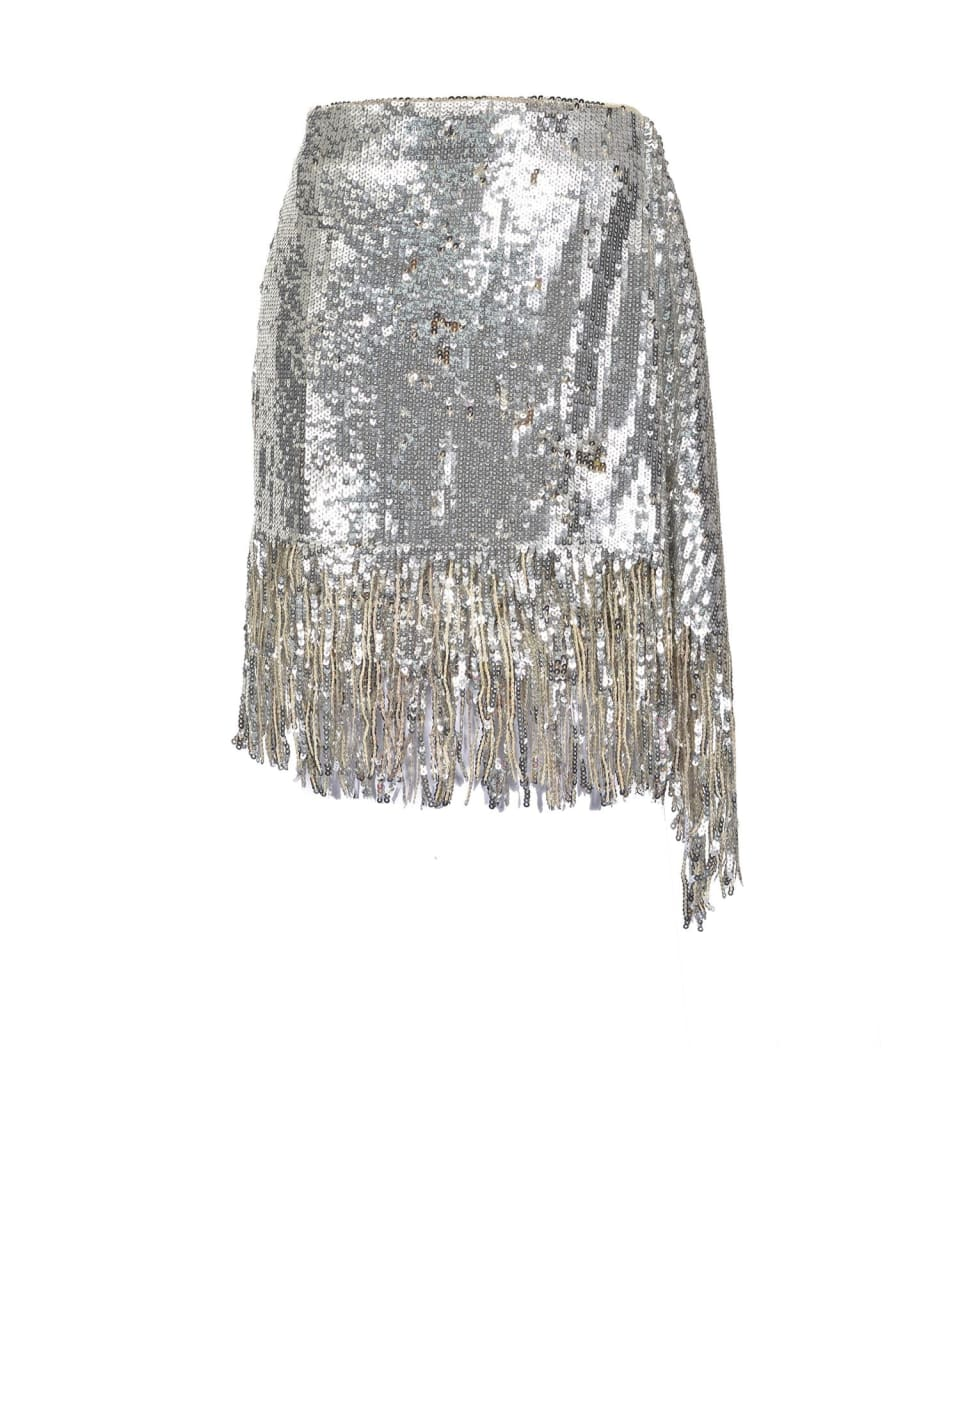 Mini skirt in full sequins with fringe